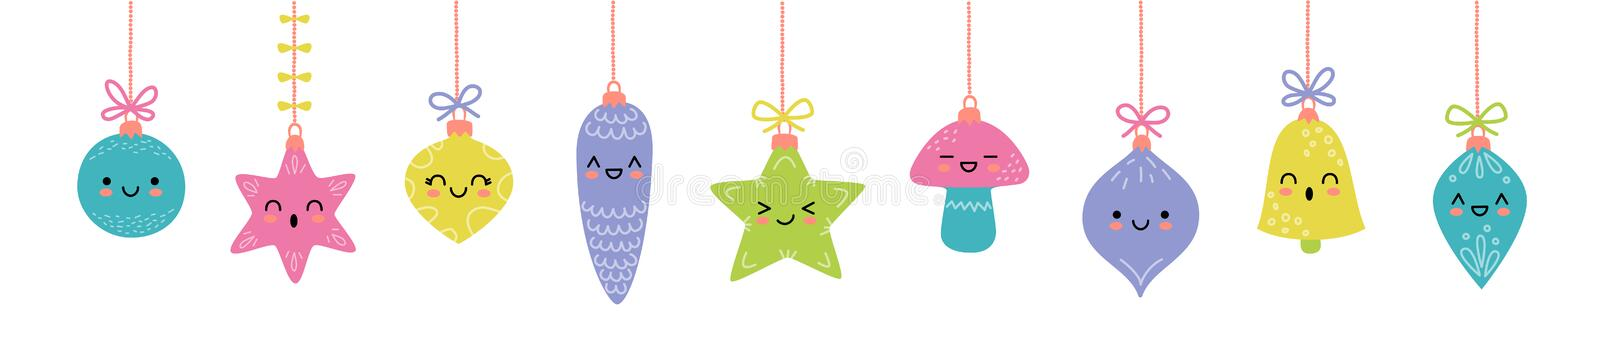 Set of balls for Christmas tree decorations. New Year toys. Collection of vector illustration in cartoon style royalty free illustration